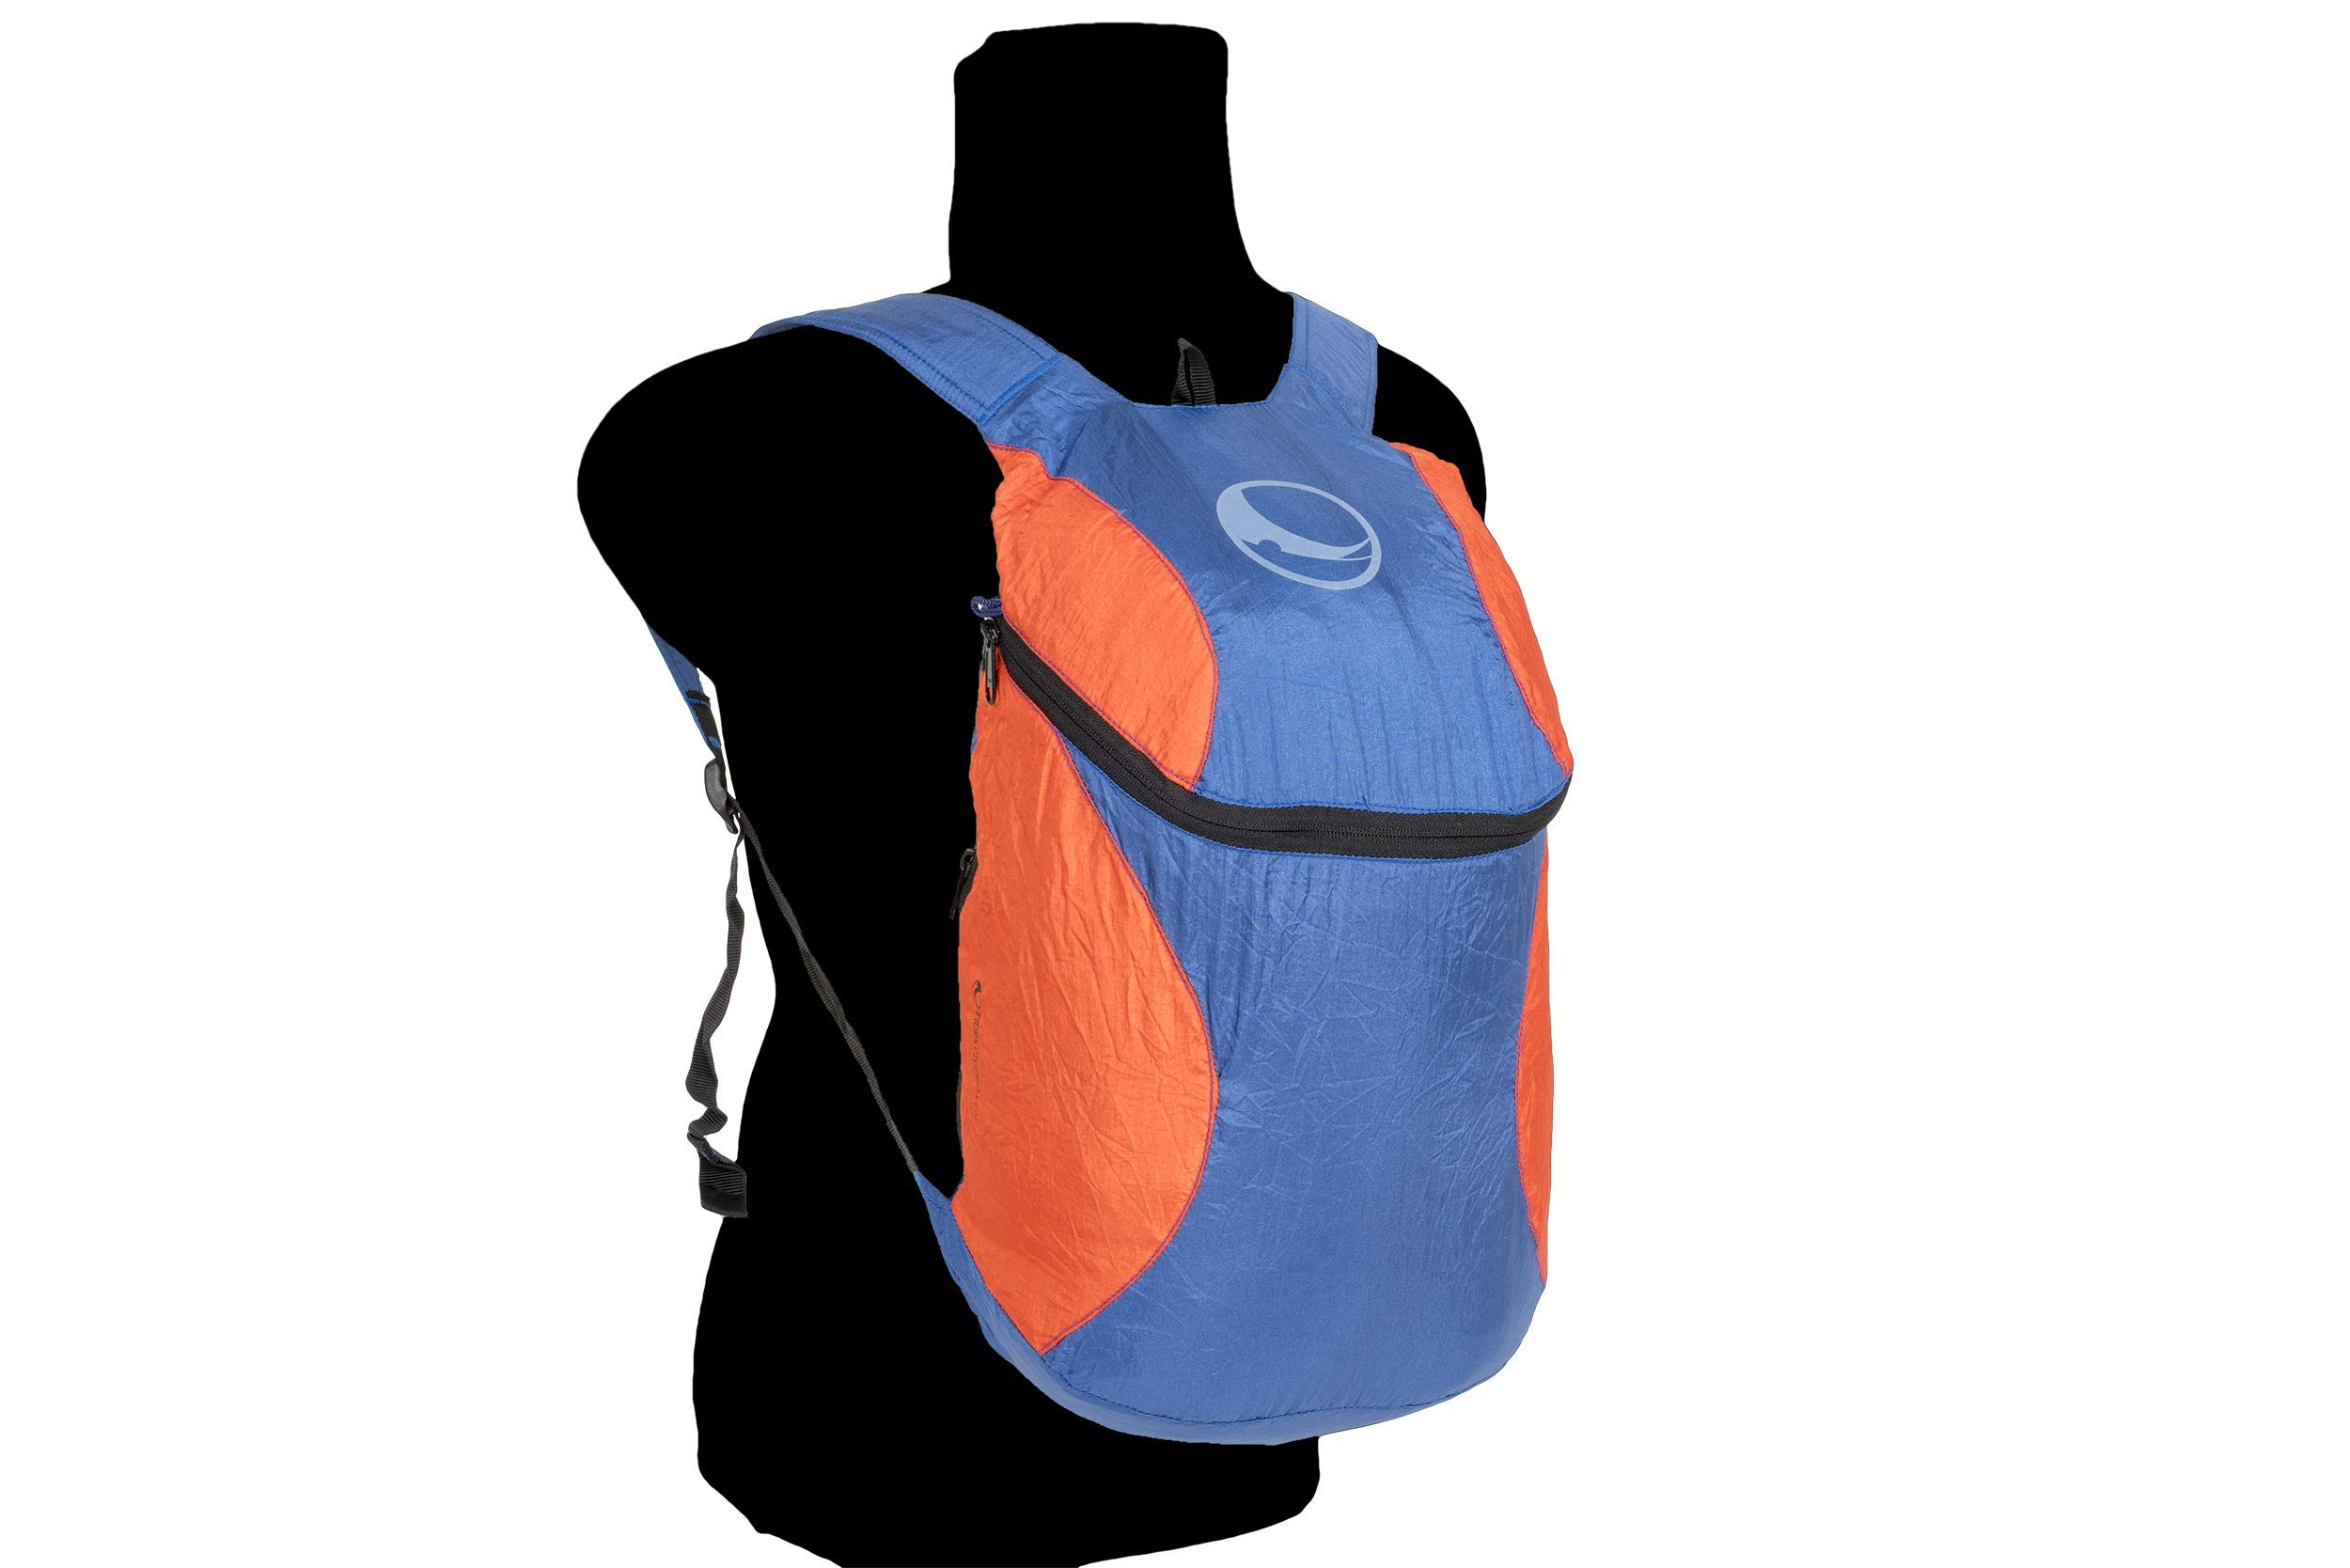 Ticket To the Moon Mini Backpack | Eco-Friendly | 28x42x15 cm | 15L Capacity (Royal Blue/Orange)